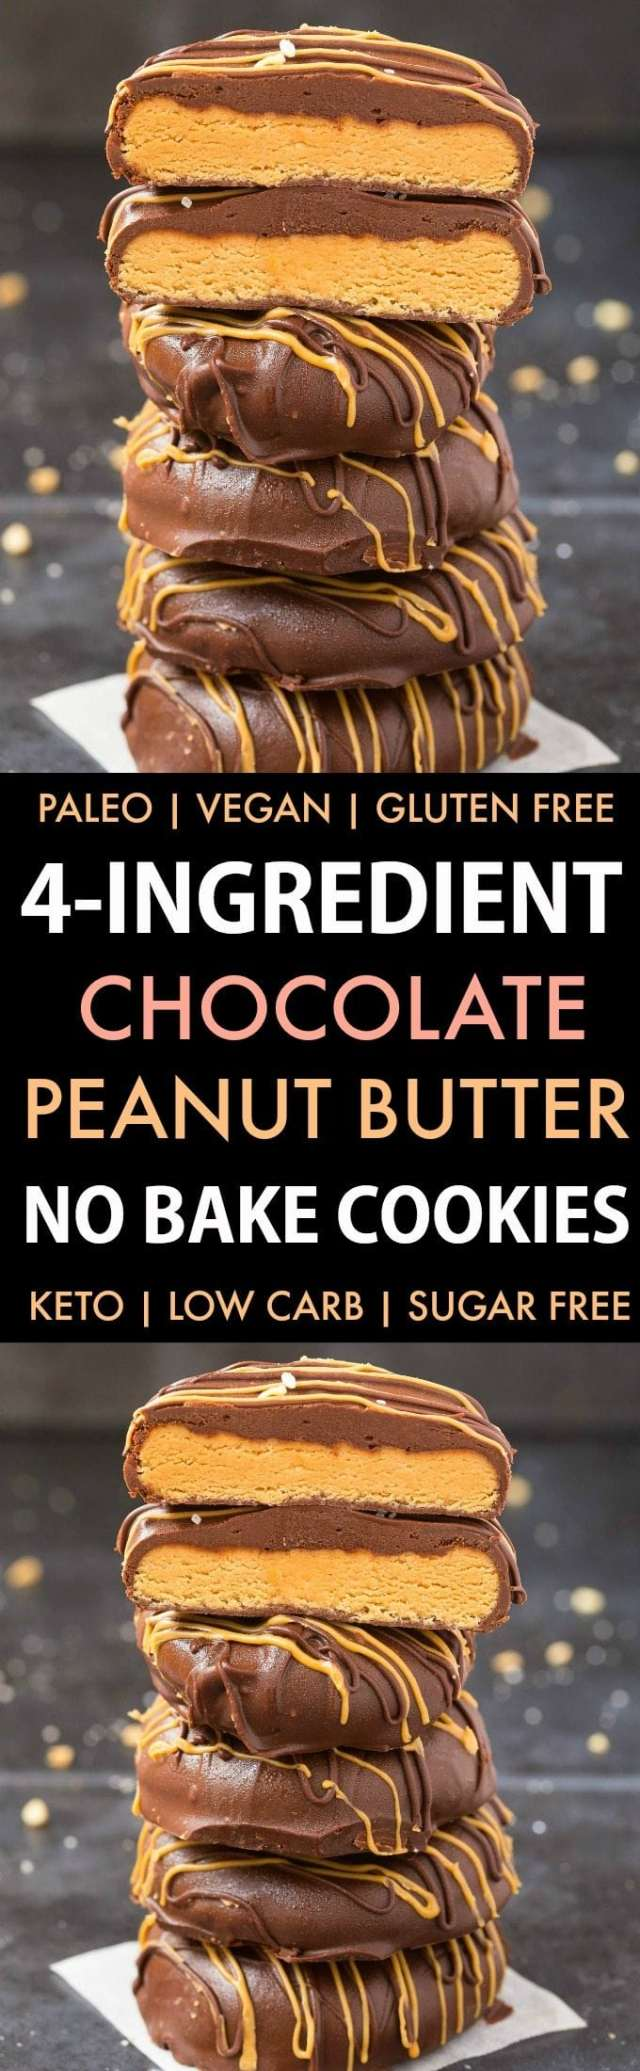 4-Ingredient No Bake Chocolate Peanut Butter Cookies (Paleo, Vegan, Keto, Sugar Free, Gluten Free)-An easy recipe for chocolate peanut butter no bake cookies using just 4 ingredients! Easy, delicious low carb cookies which take less than 5 minutes to whip up- The perfect snack or holiday gift. #keto #ketodessert #nobake #cookies #peanutbutter | Recipe on thebigmansworld.com